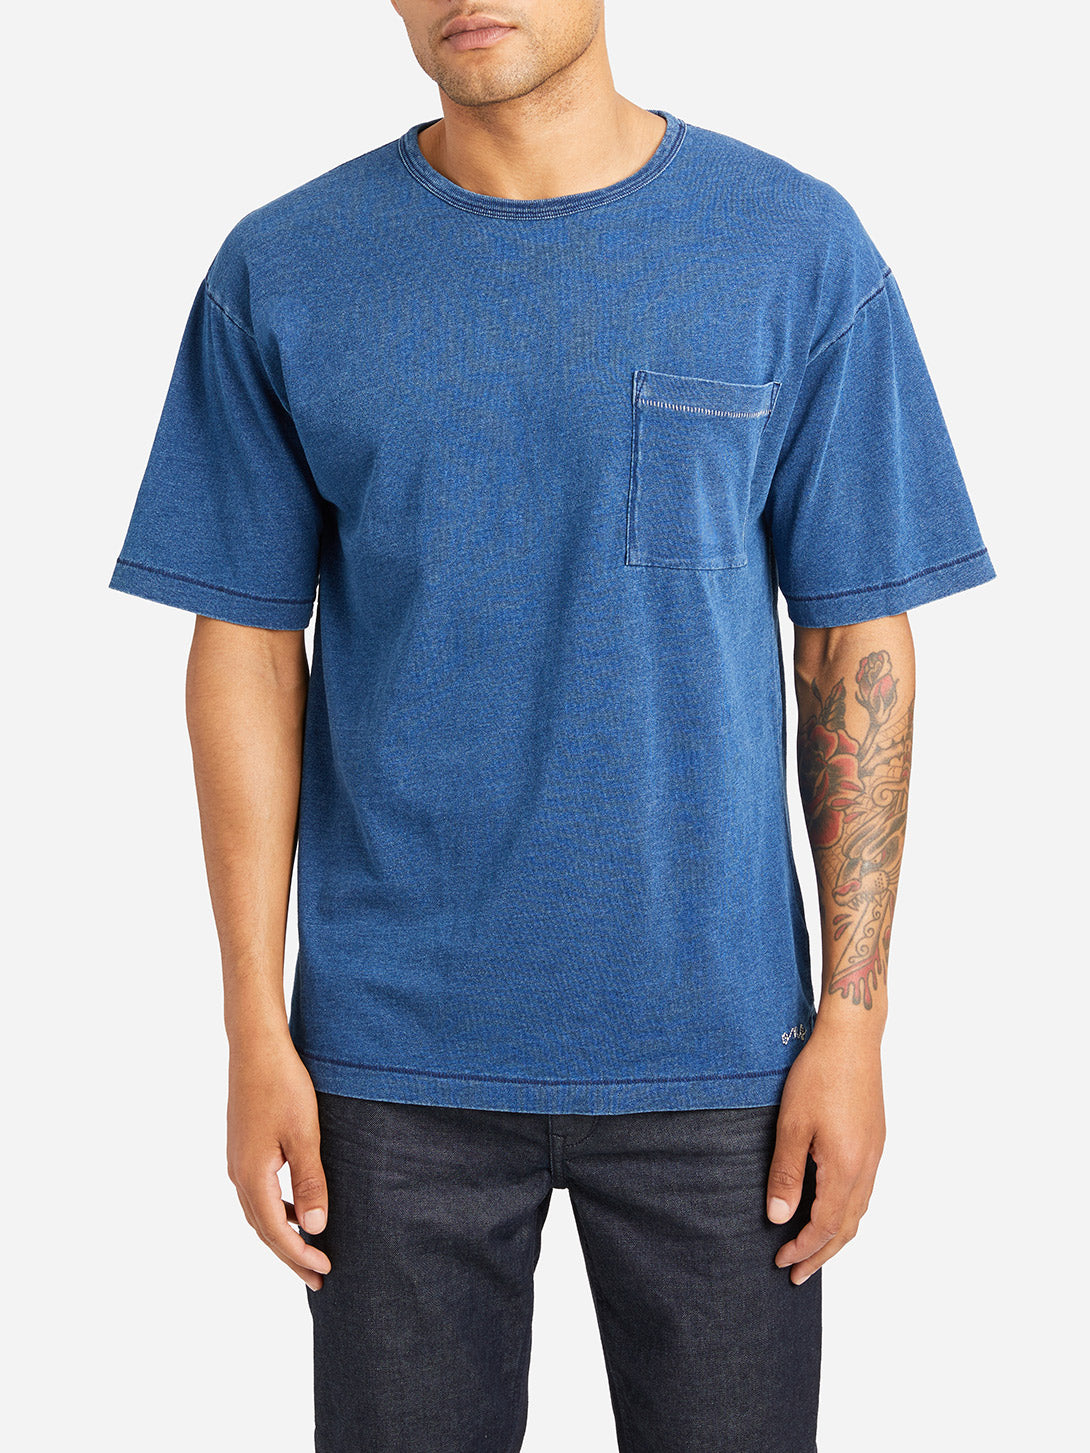 MEDIUM INDIGO short sleeve crew neck t shirt men marcy crew neck pocket tee md indigo